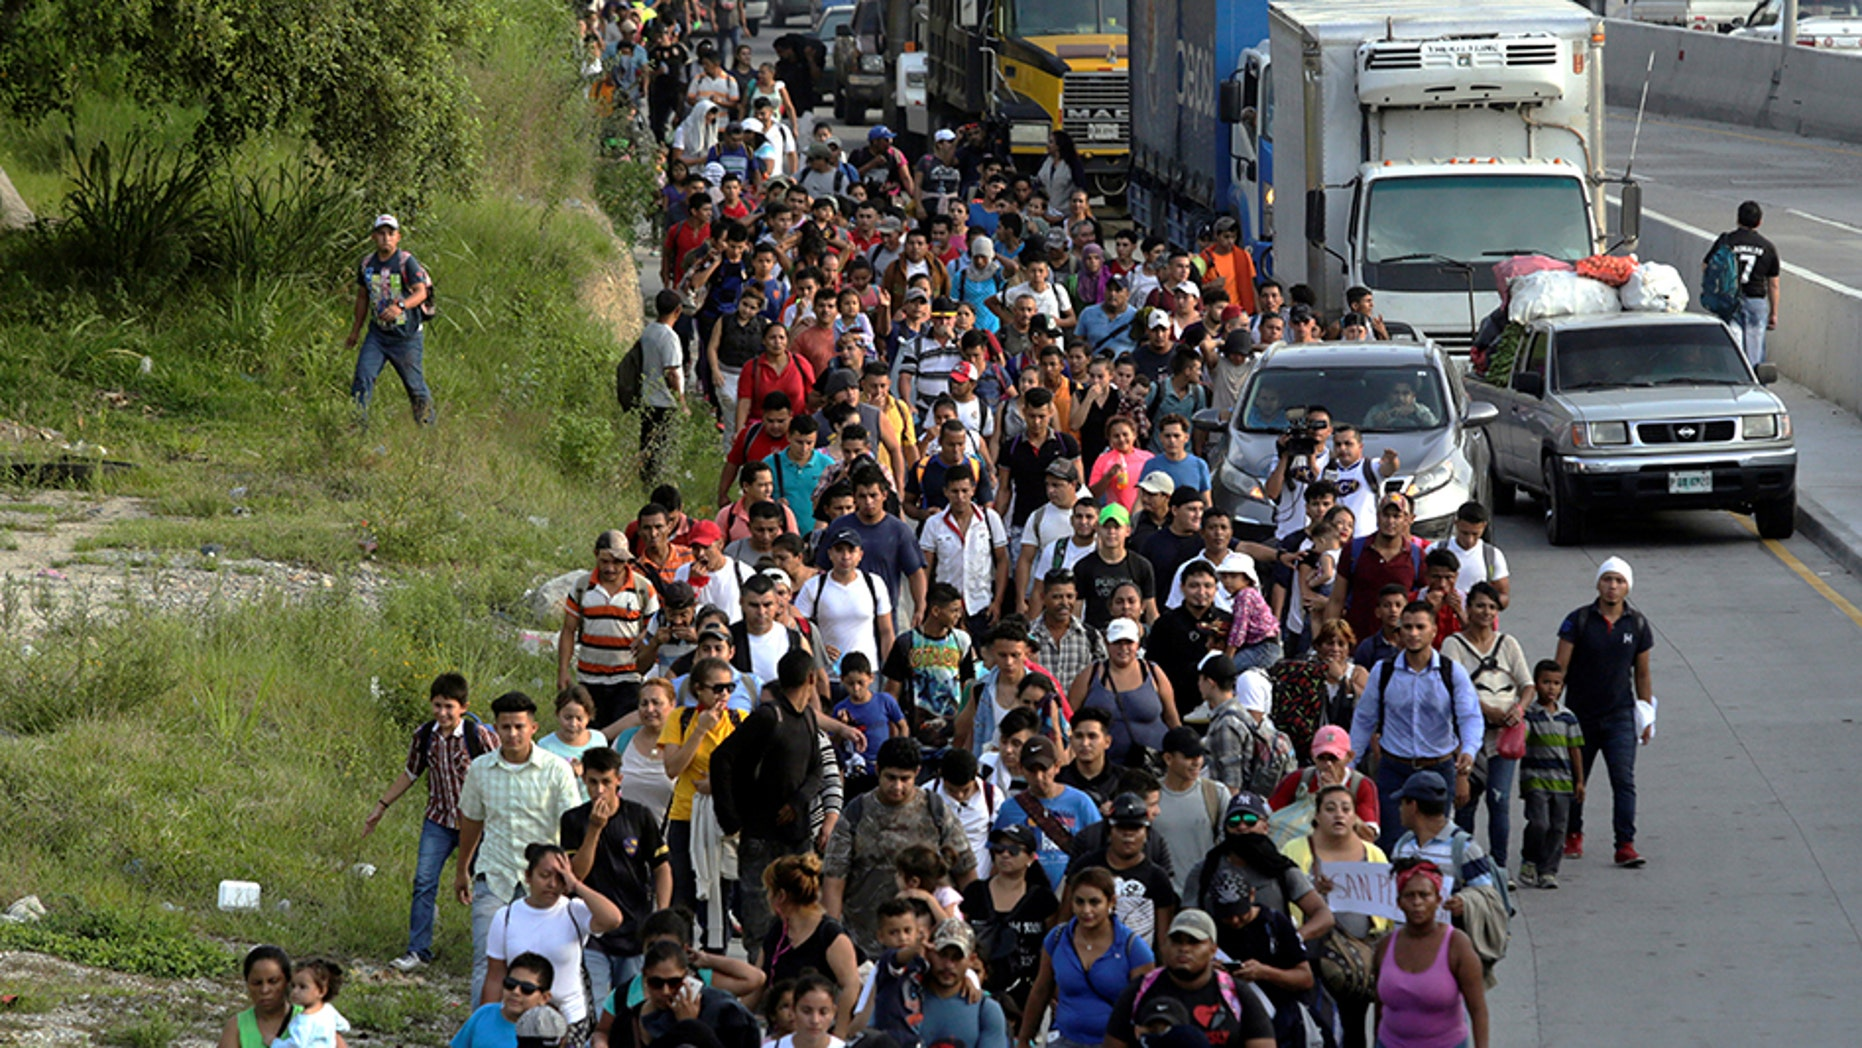 BORDER CHAOS: Second 'Migrant Caravan' Makes its Way Towards US Border